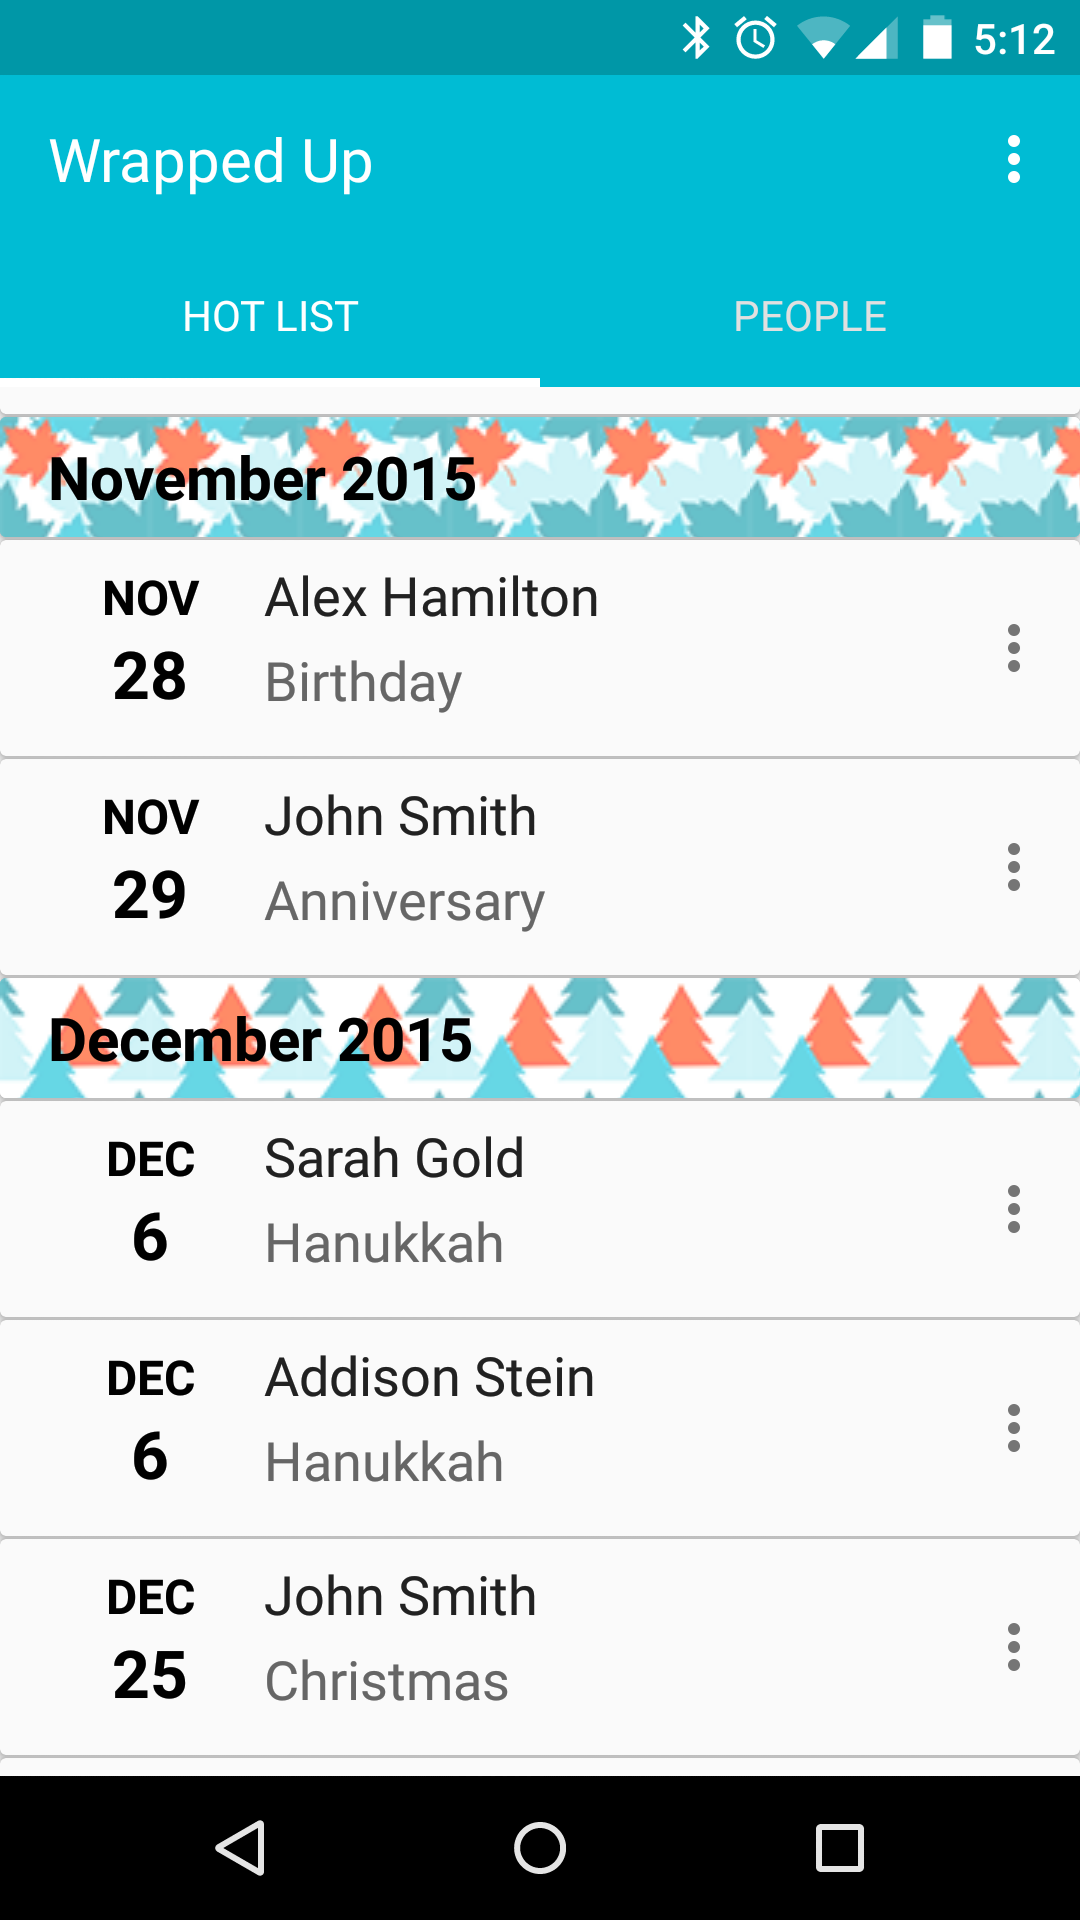 The Hot List with upcoming event dates and the people who are celebrating on those dates.